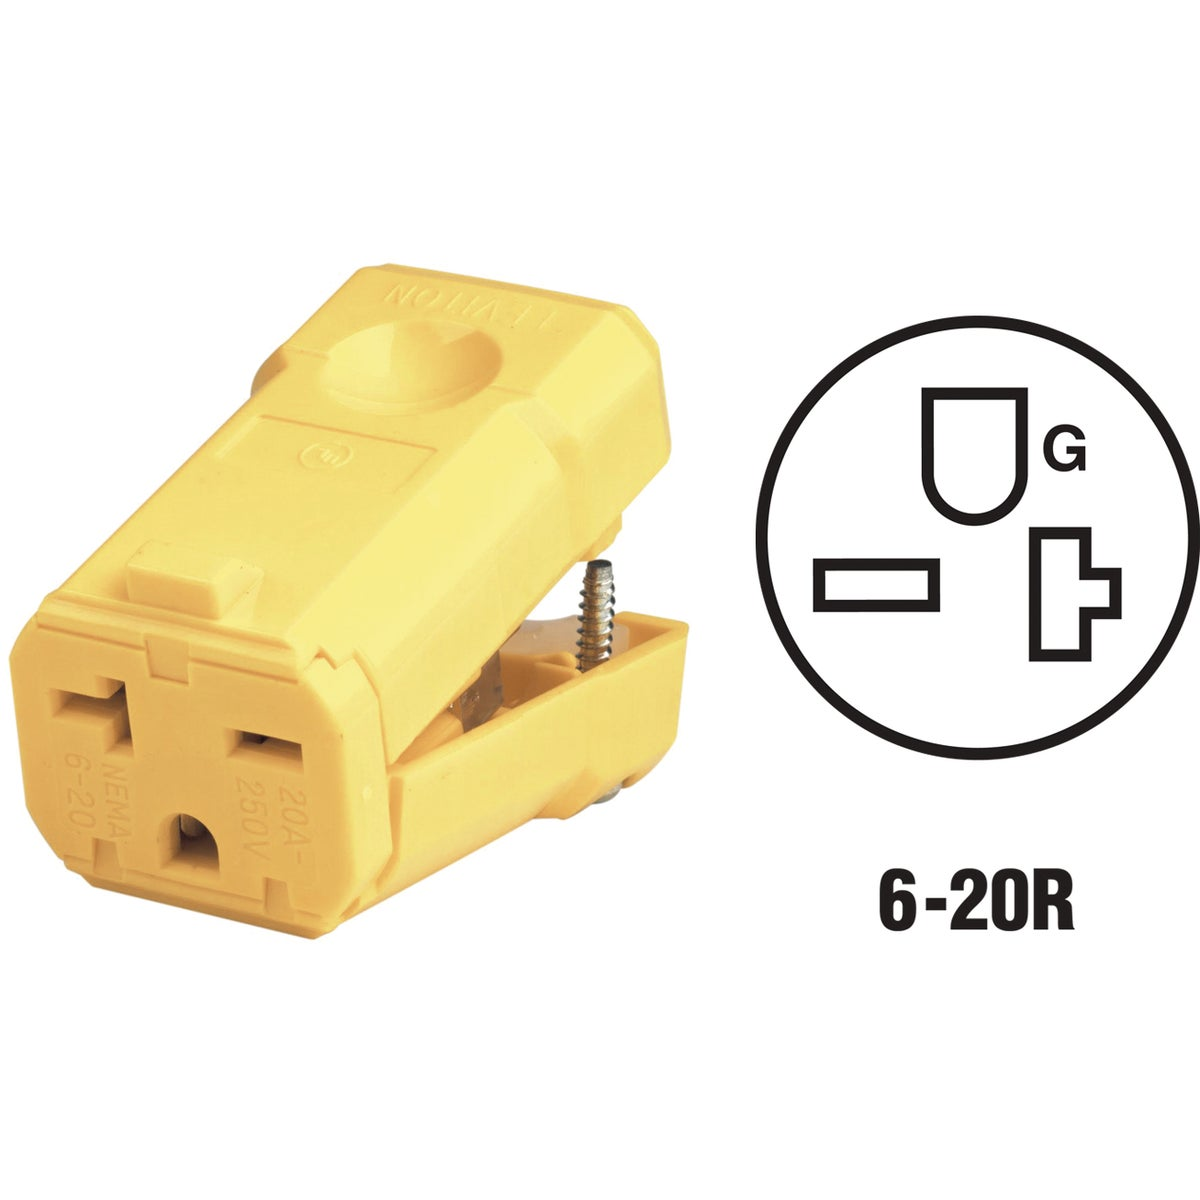 20A GRND CORD CONNECTOR - 081-5459VY by Leviton Mfg Co